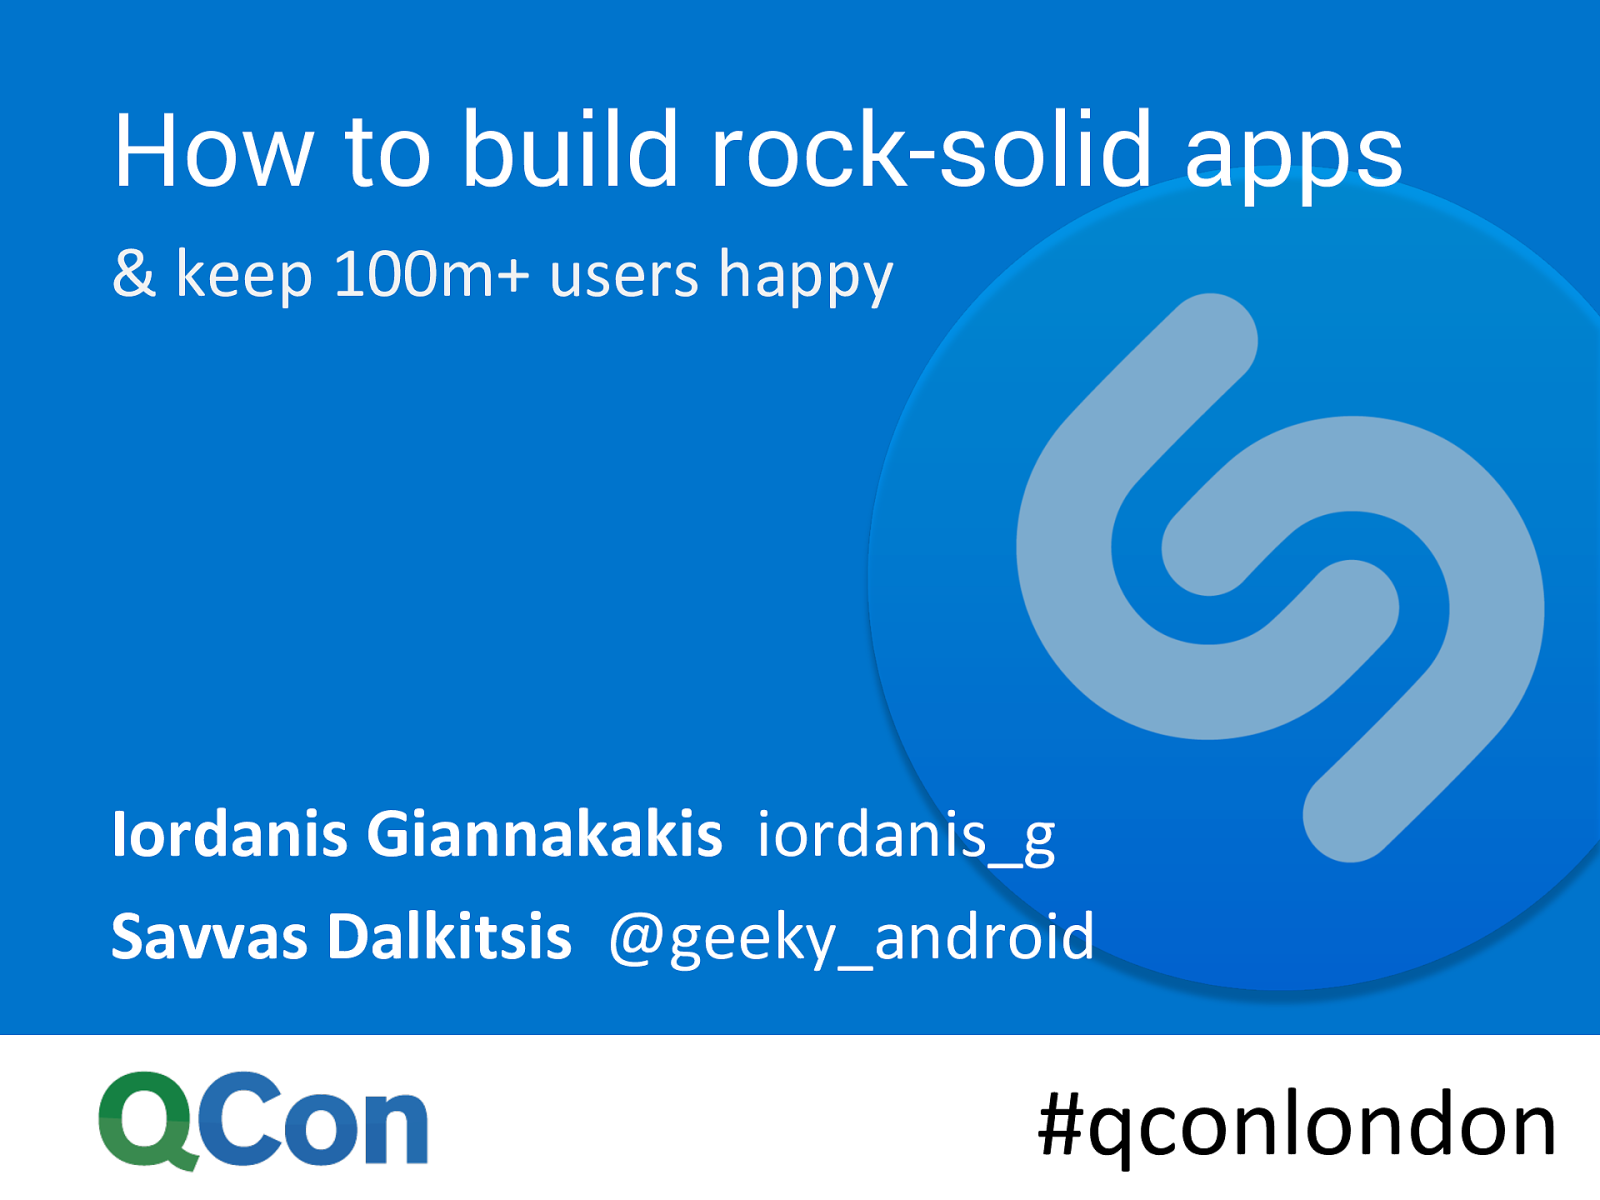 How we Build Rock-solid Apps and Keep 100M+ Users Happy at Shazam